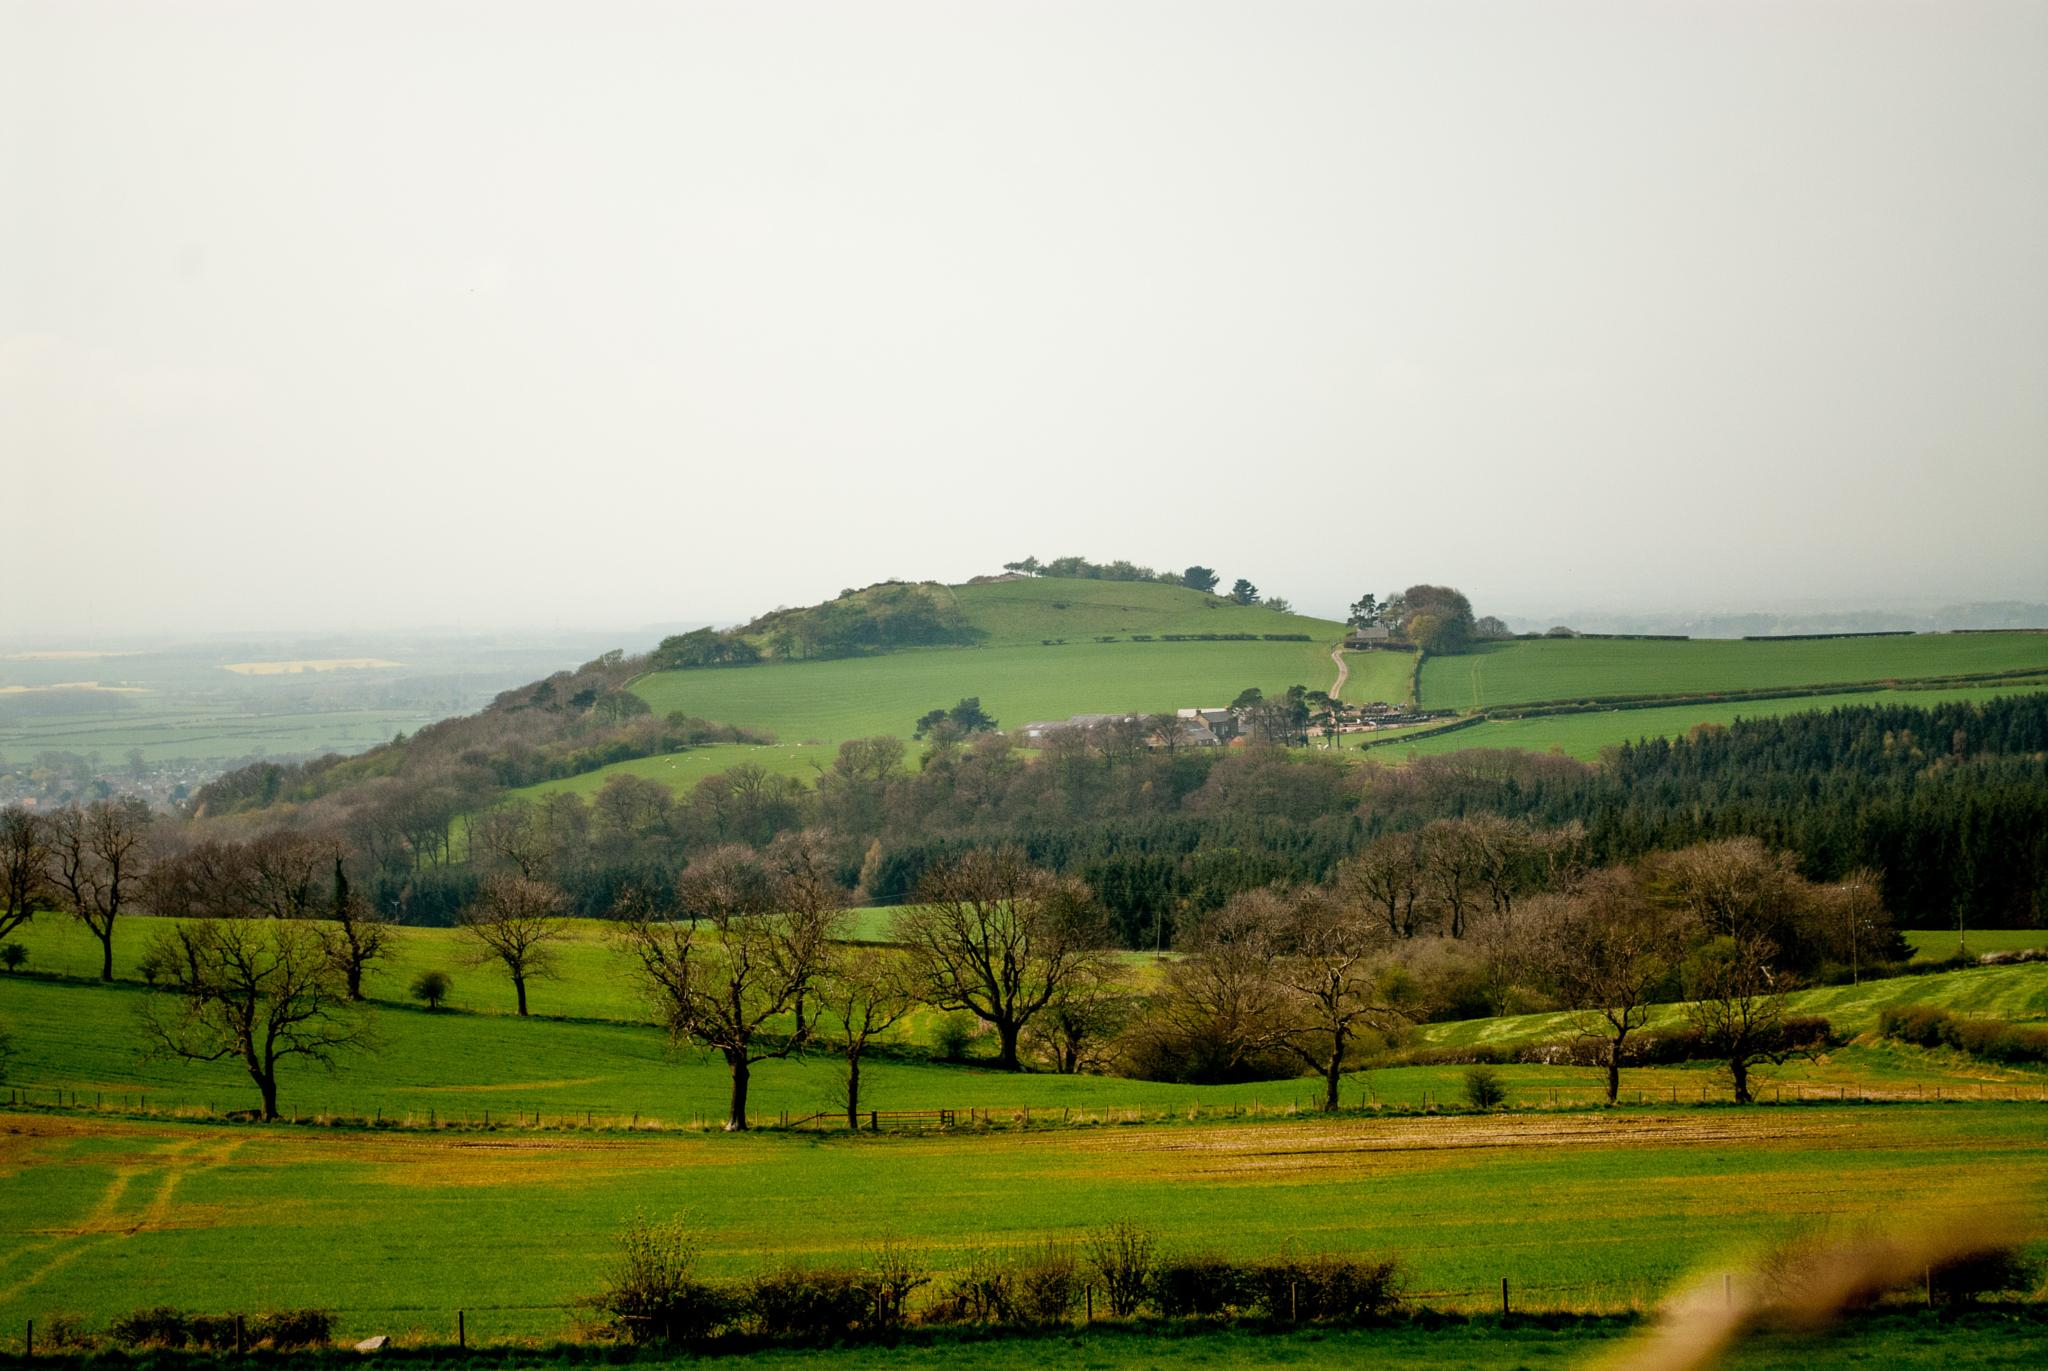 A view from a hill. by NatureGirl